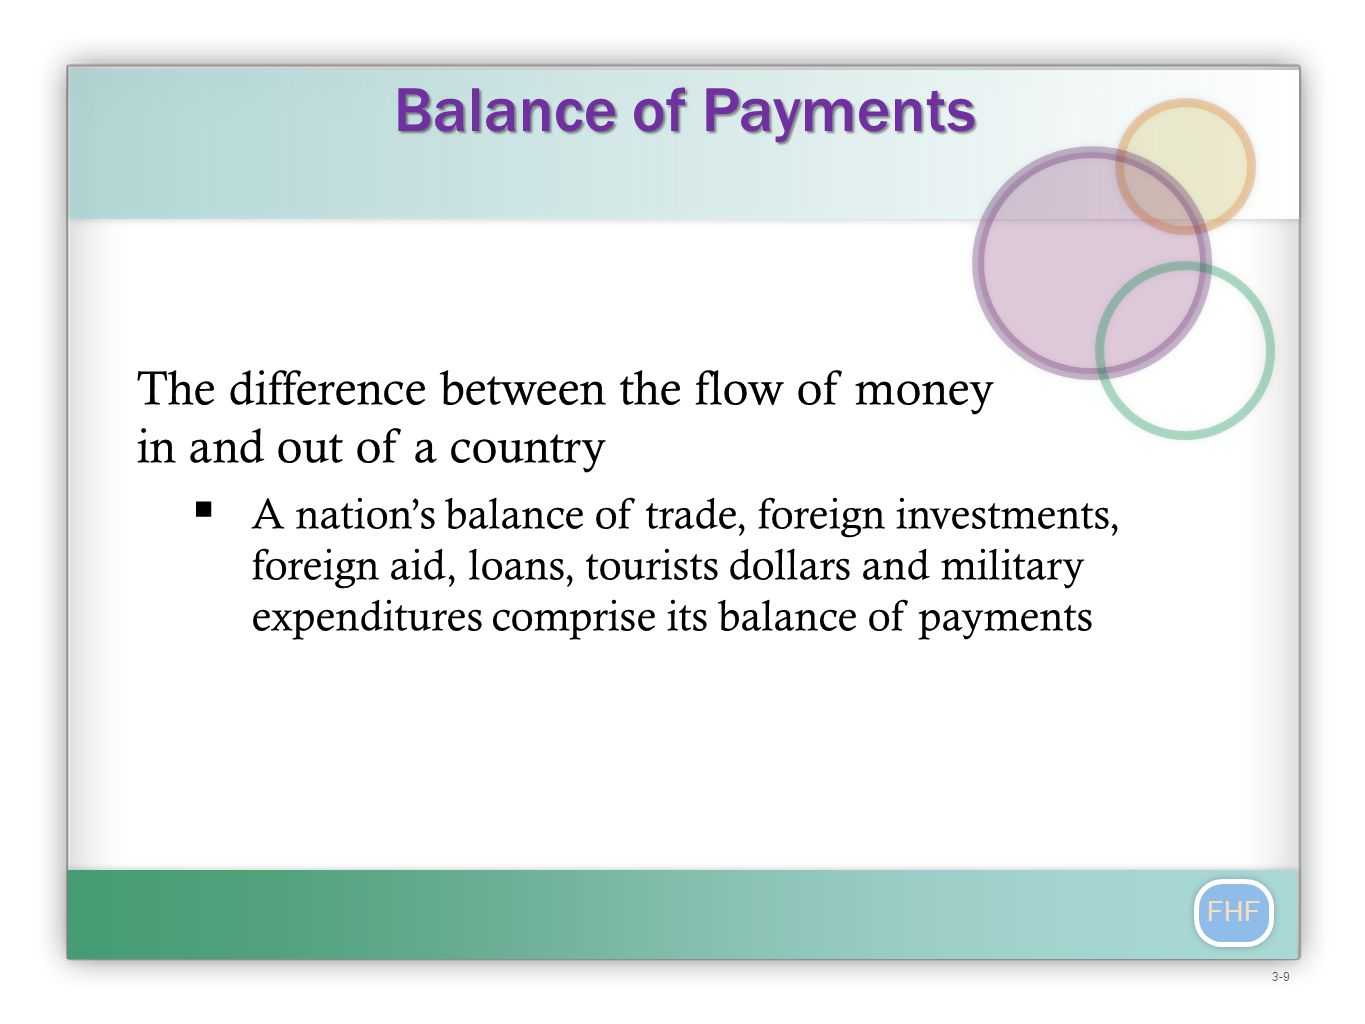 FHF Balance of Payments The difference between the flow of money in and out of a country  A nation's balance of trade, foreign investments, foreign aid, loans, tourists dollars and military expenditures comprise its balance of payments 3-9